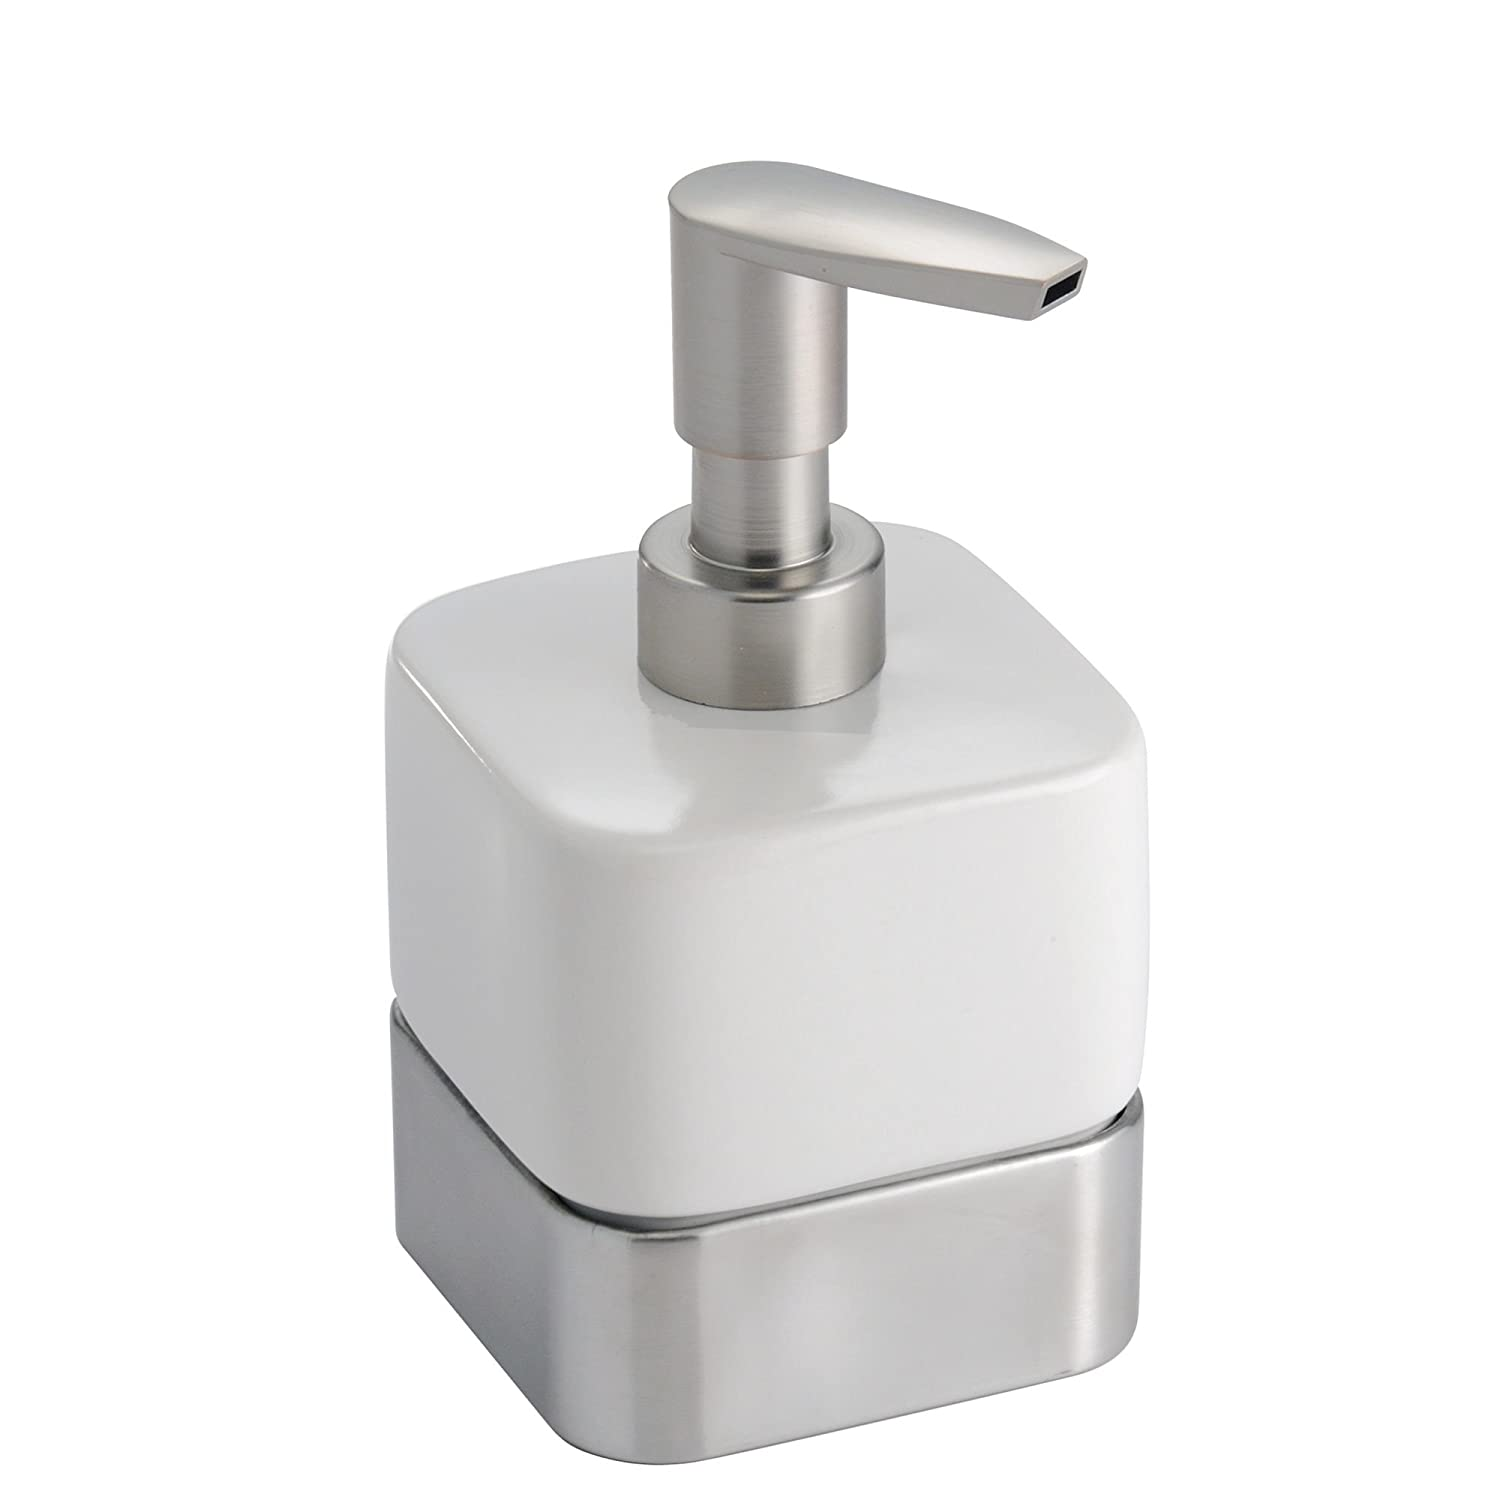 Mdesign Small Mini Compact Ceramic Liquid Hand Soap Dispenser Pump